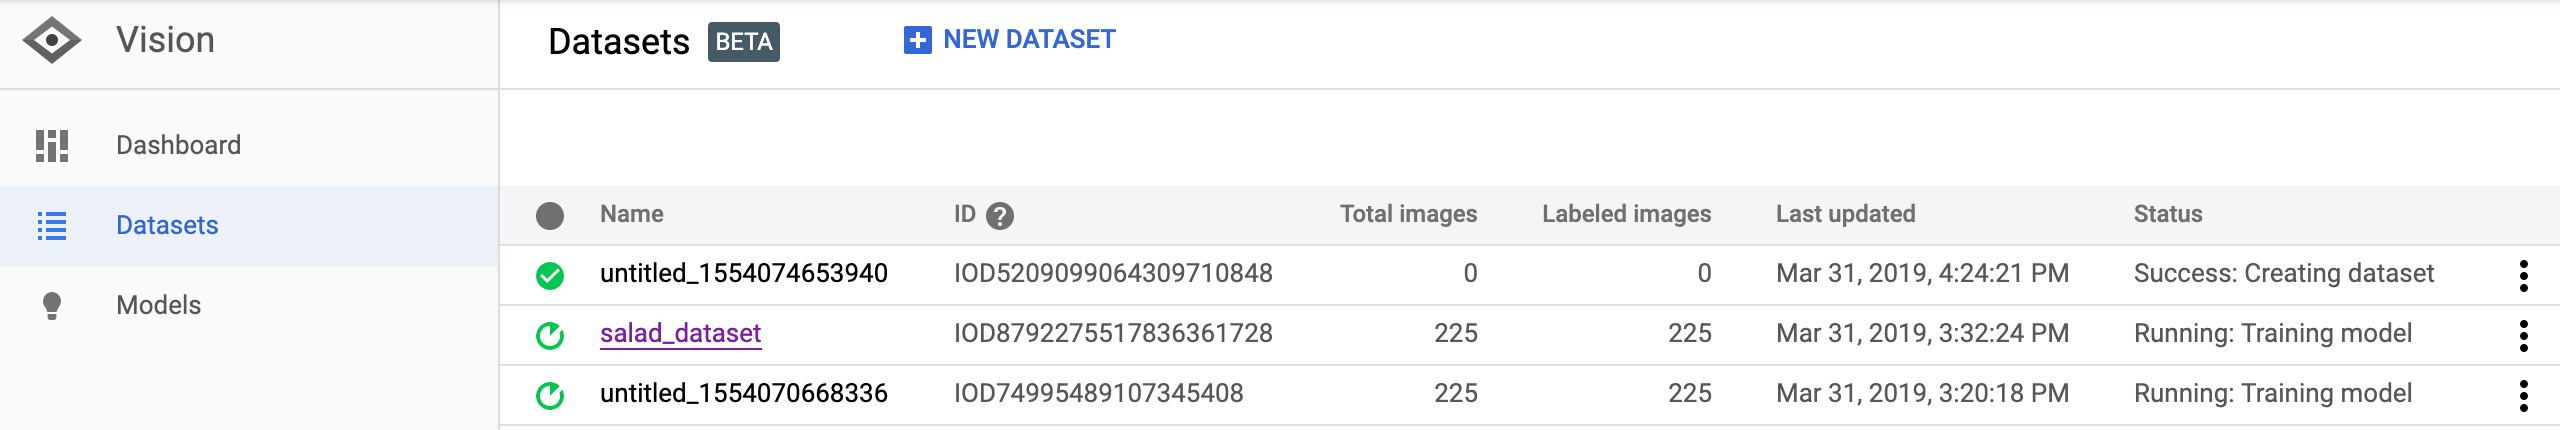 Managing datasets | Cloud AutoML Vision Object Detection